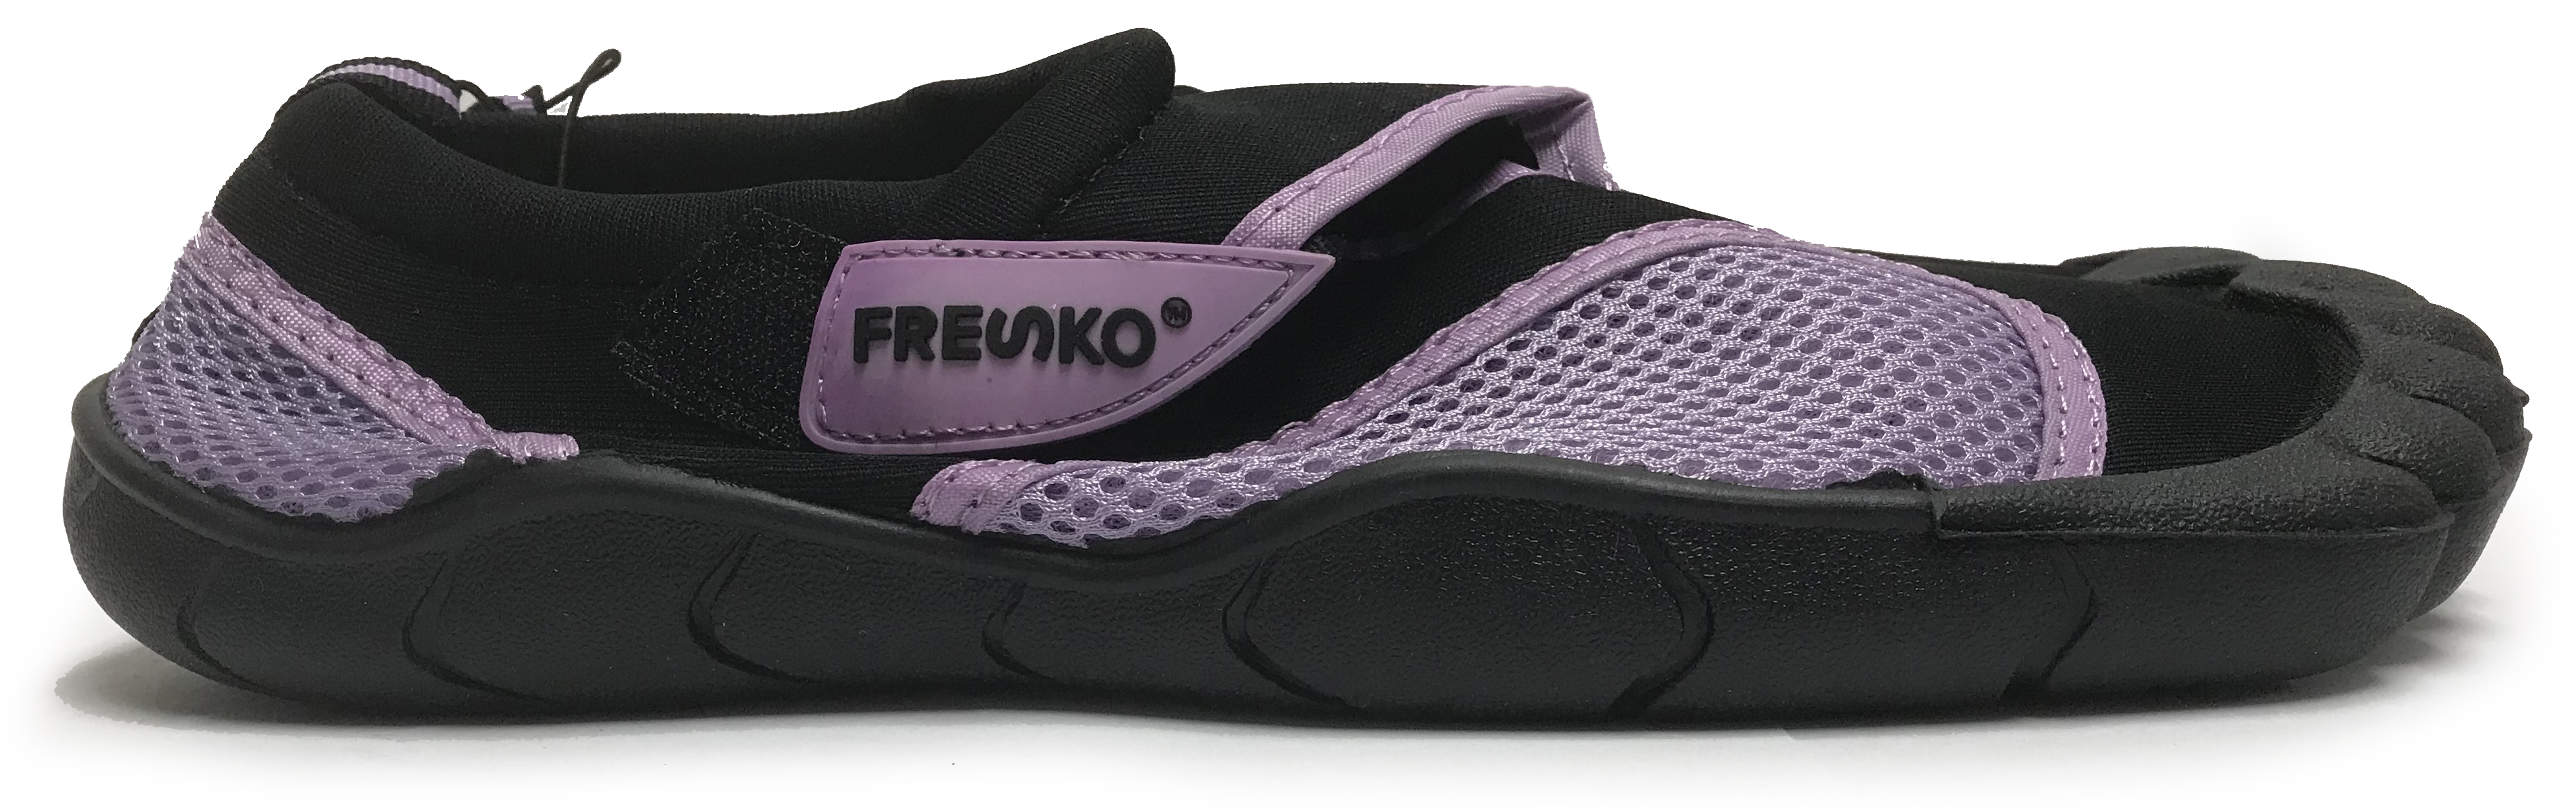 ce2d2b519965 Fresko Women s Slip on Water Shoes with Toes L2109